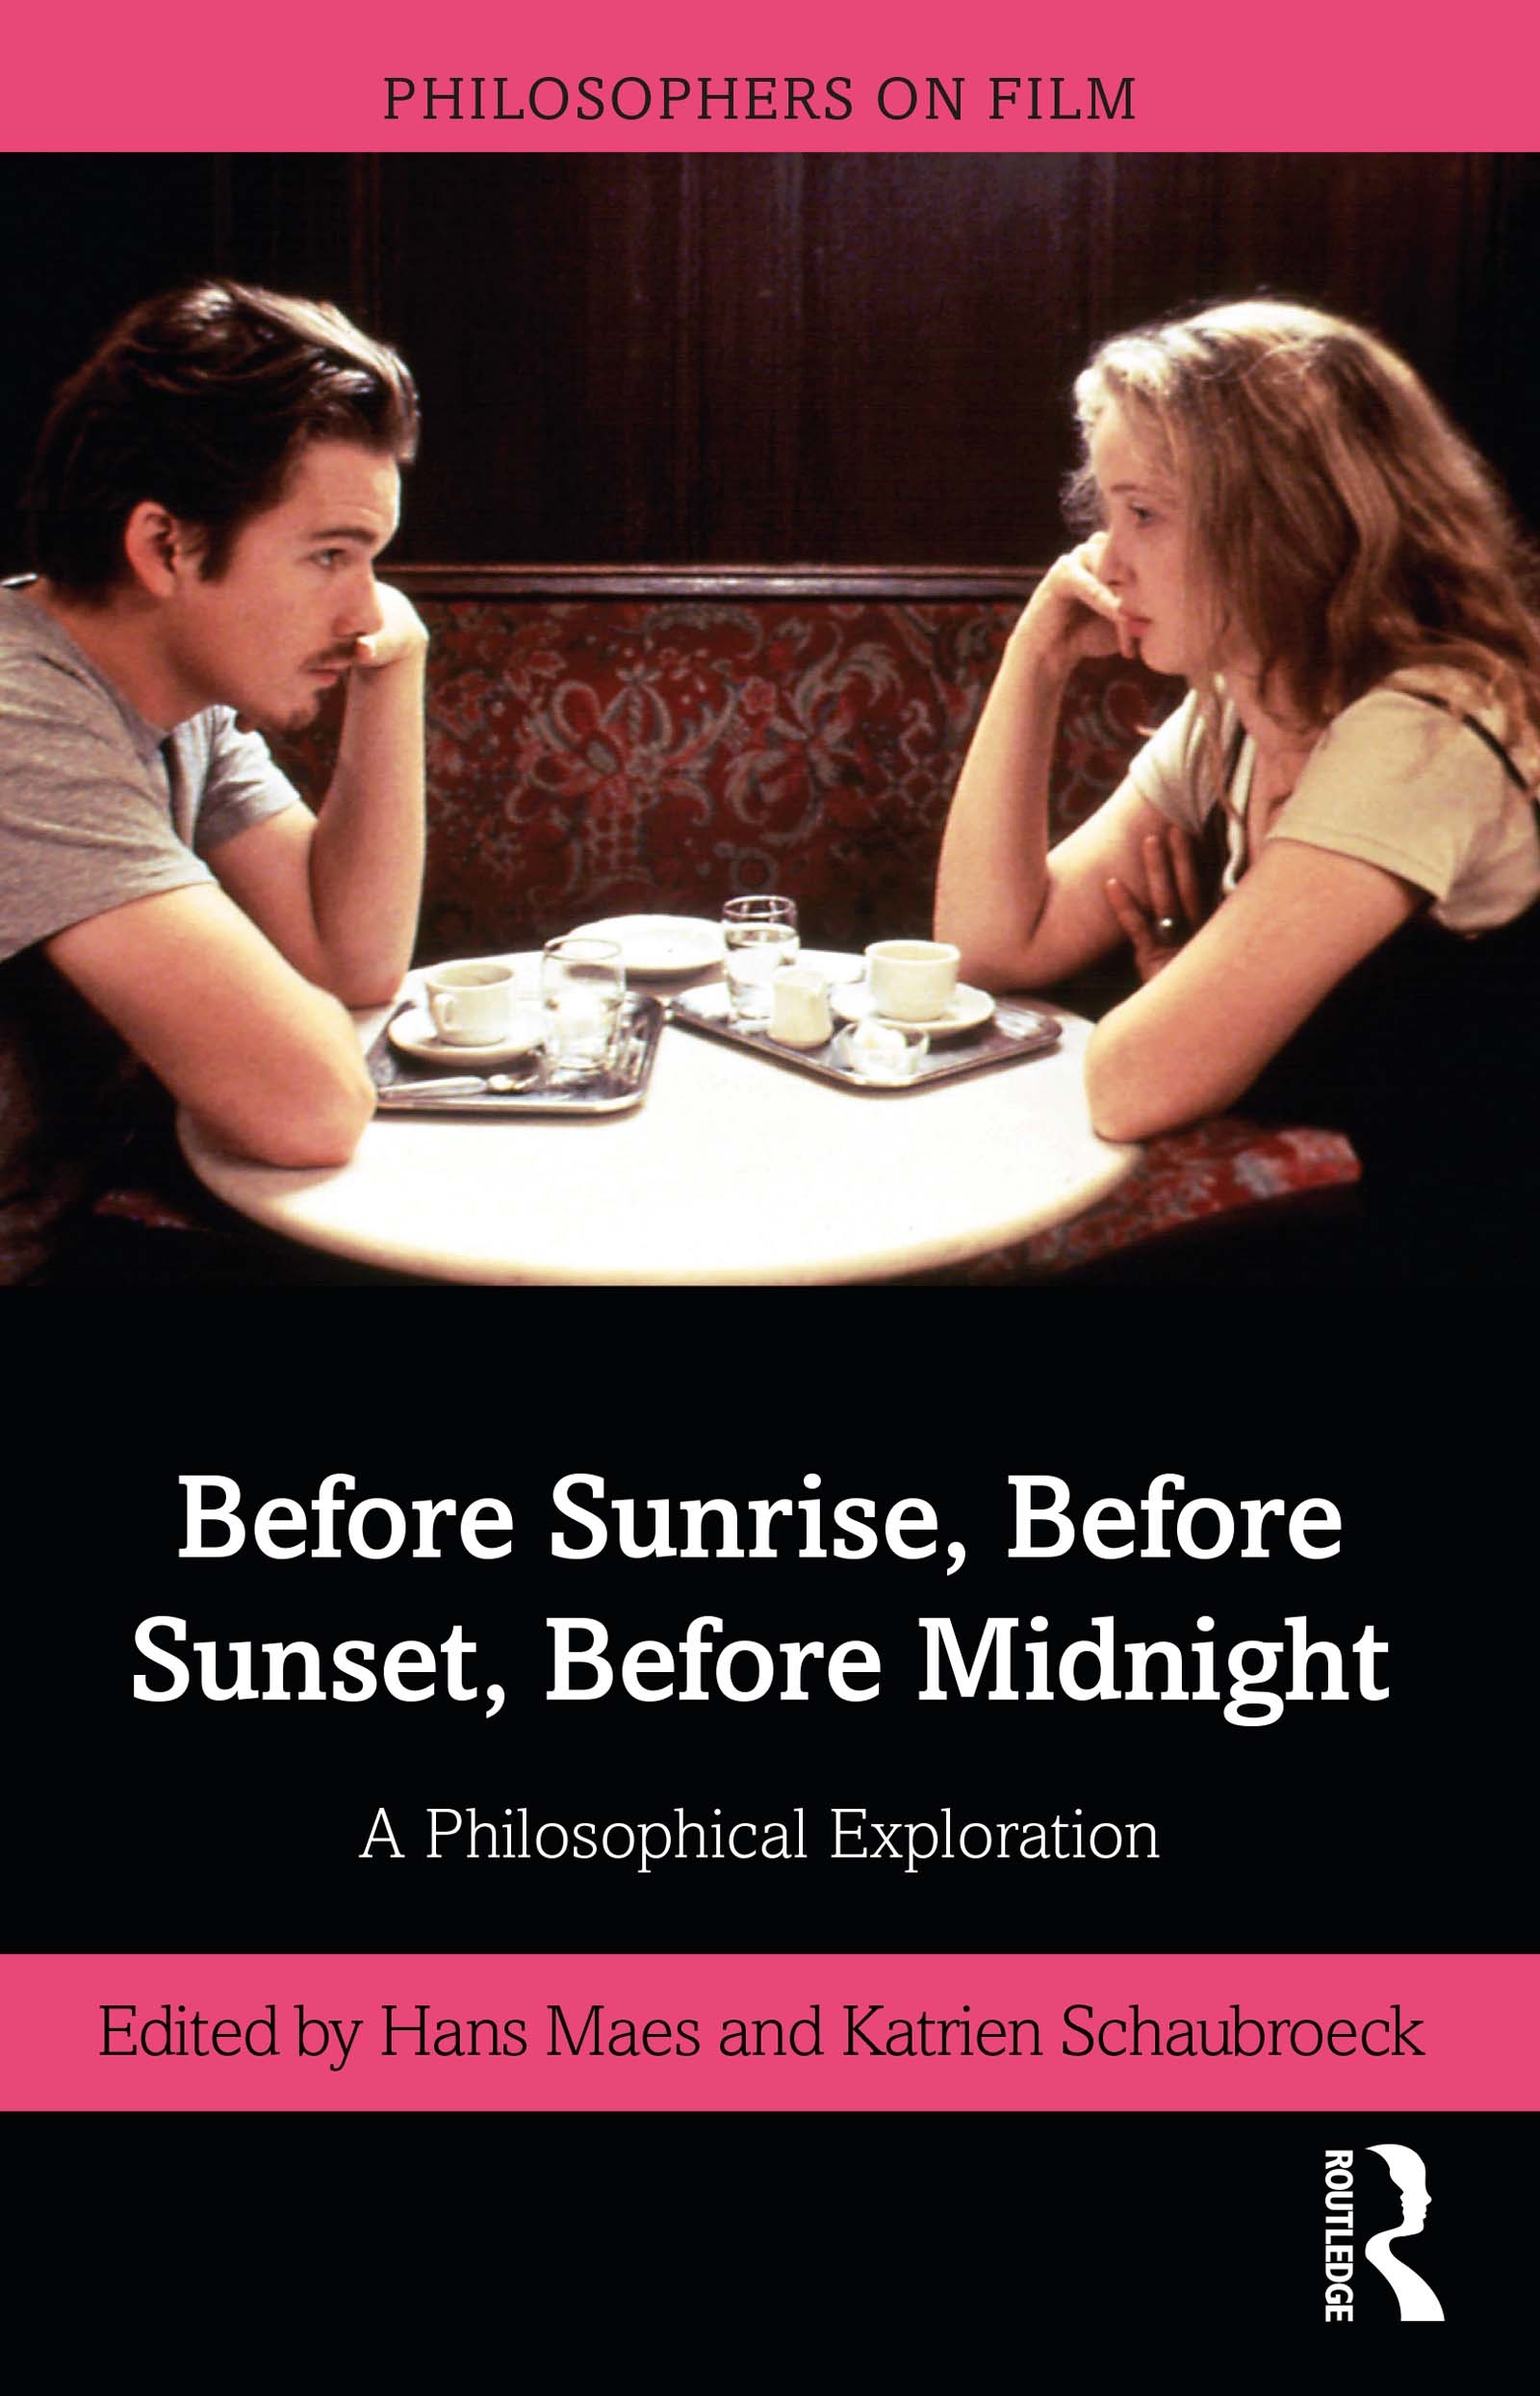 A trilogy of melancholy: on the bittersweet in Before Sunrise, Before Sunset and Before Midnight